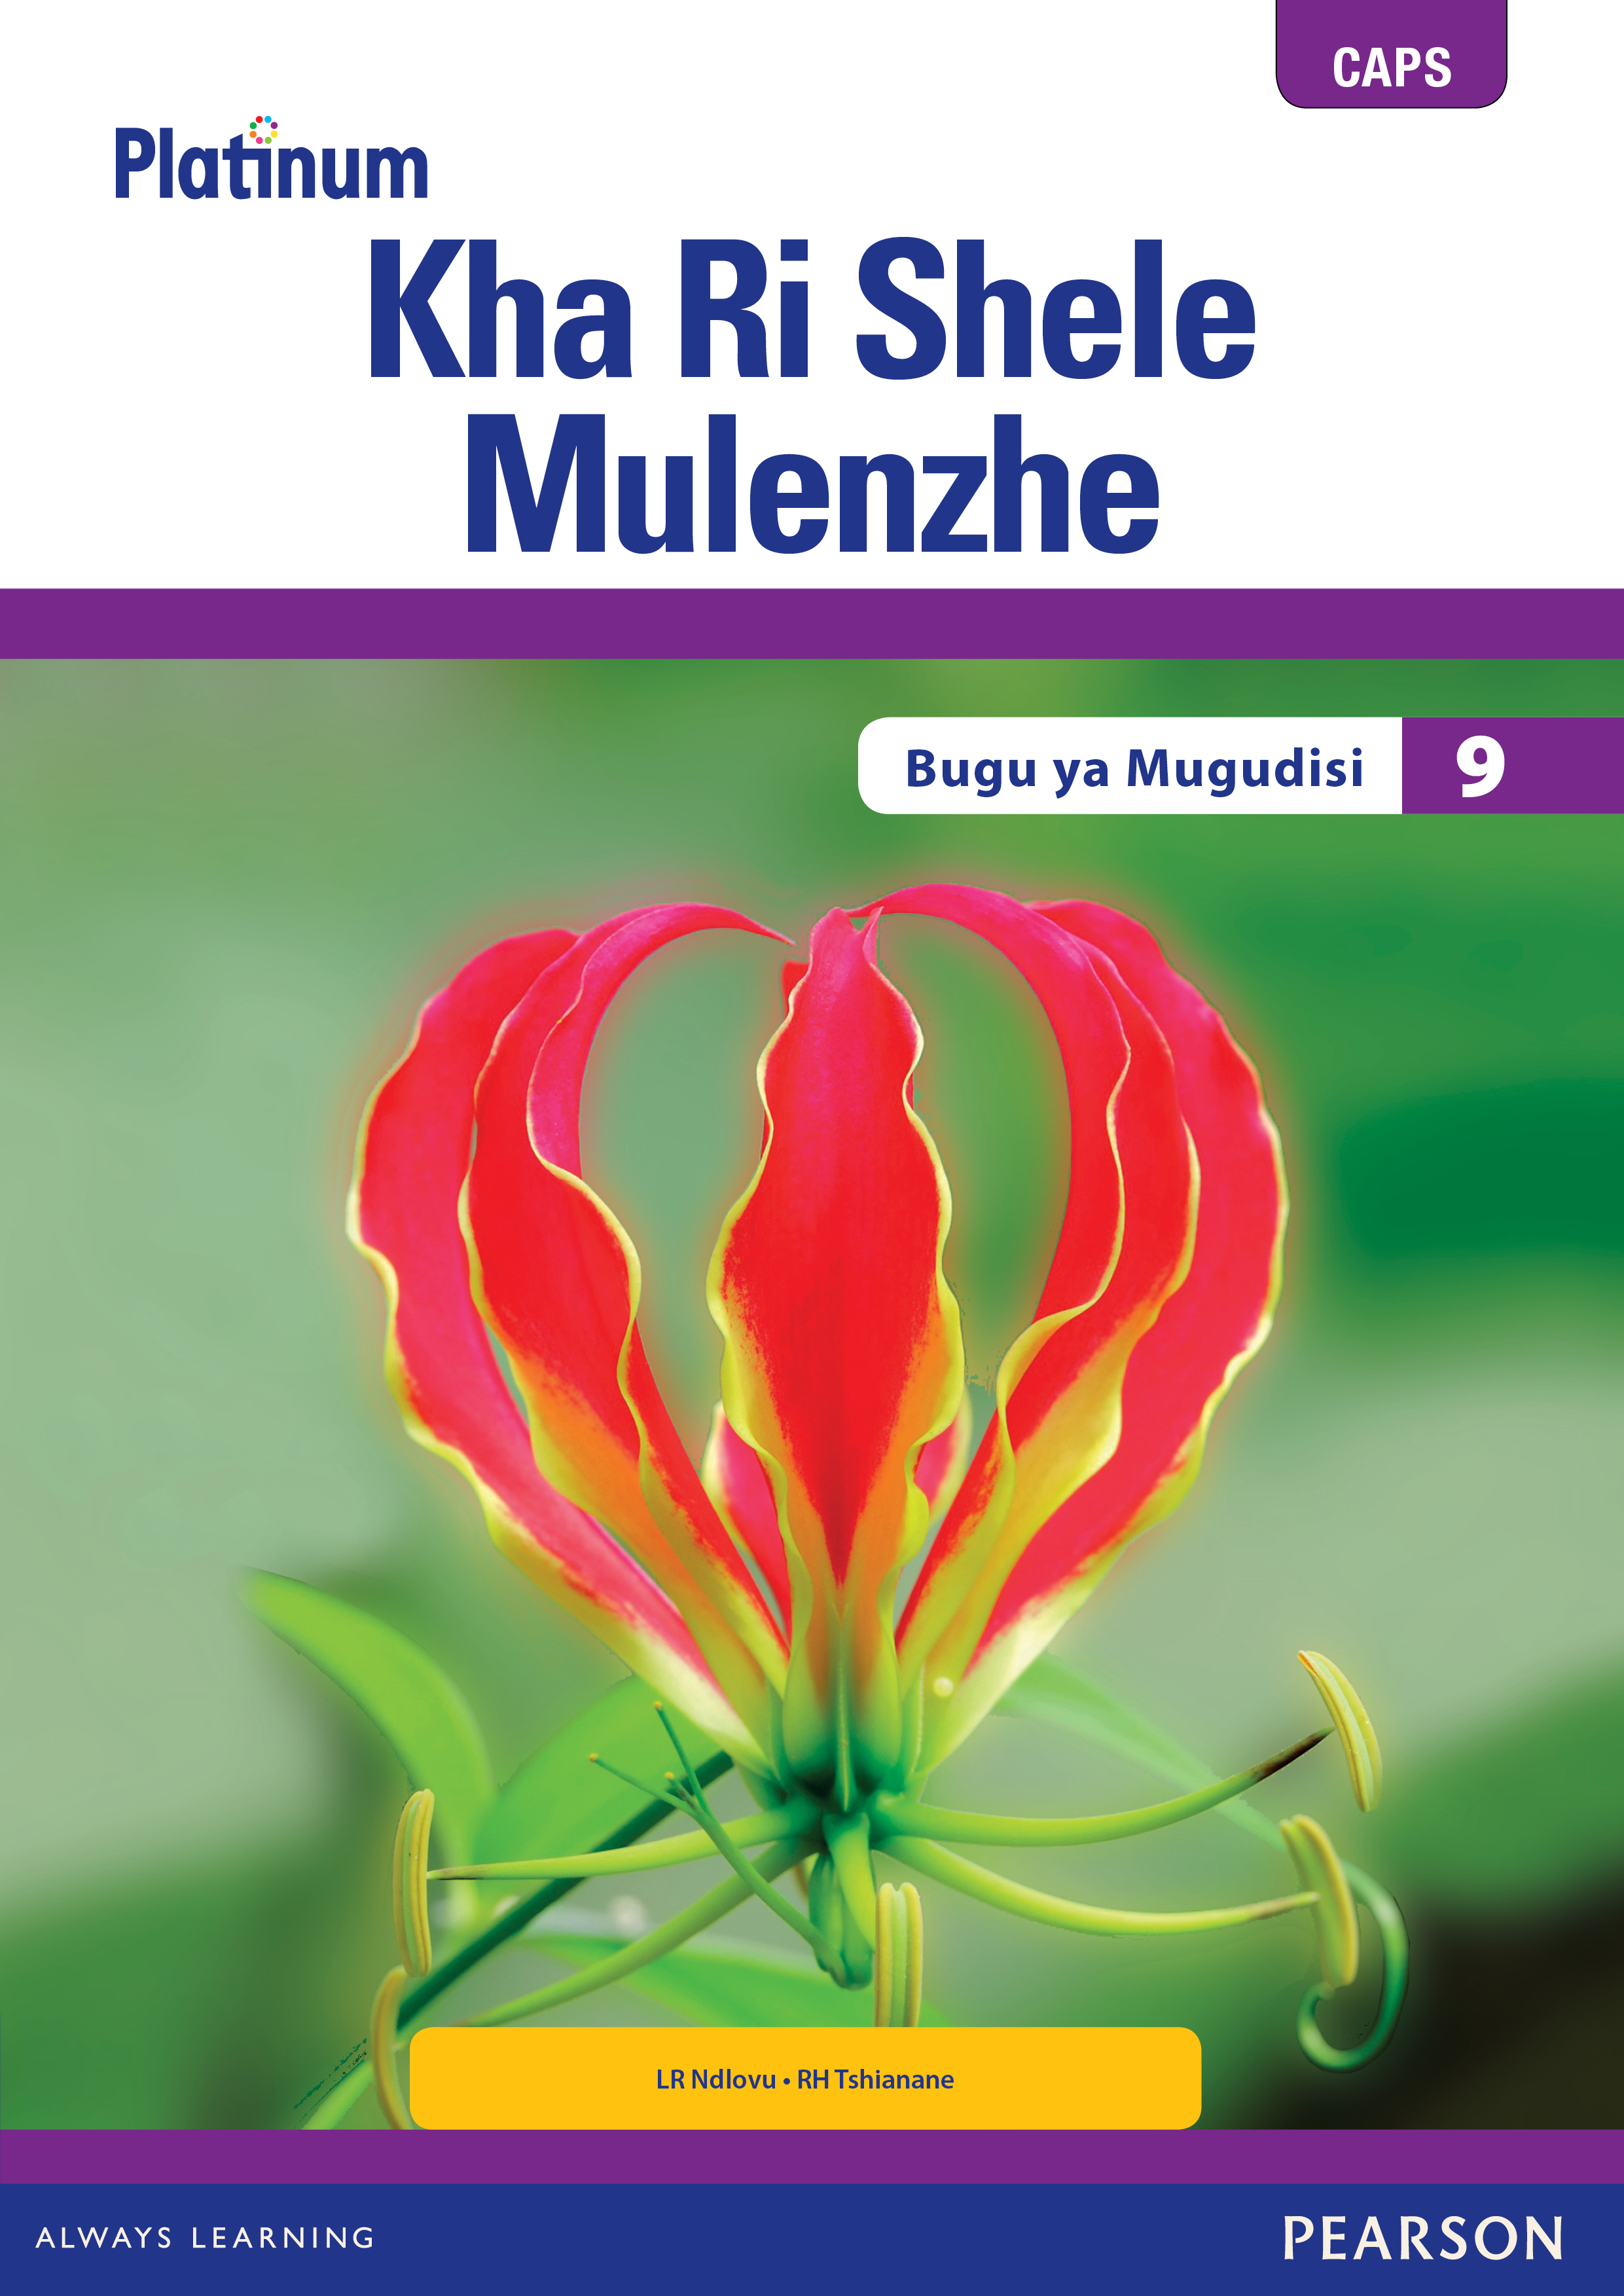 Picture of Platinum Kha Ri Shele Mulenzhe Gireidi 9 Bugu ya Mugudisi (Includes Extension and Remediation Worksheet Book)